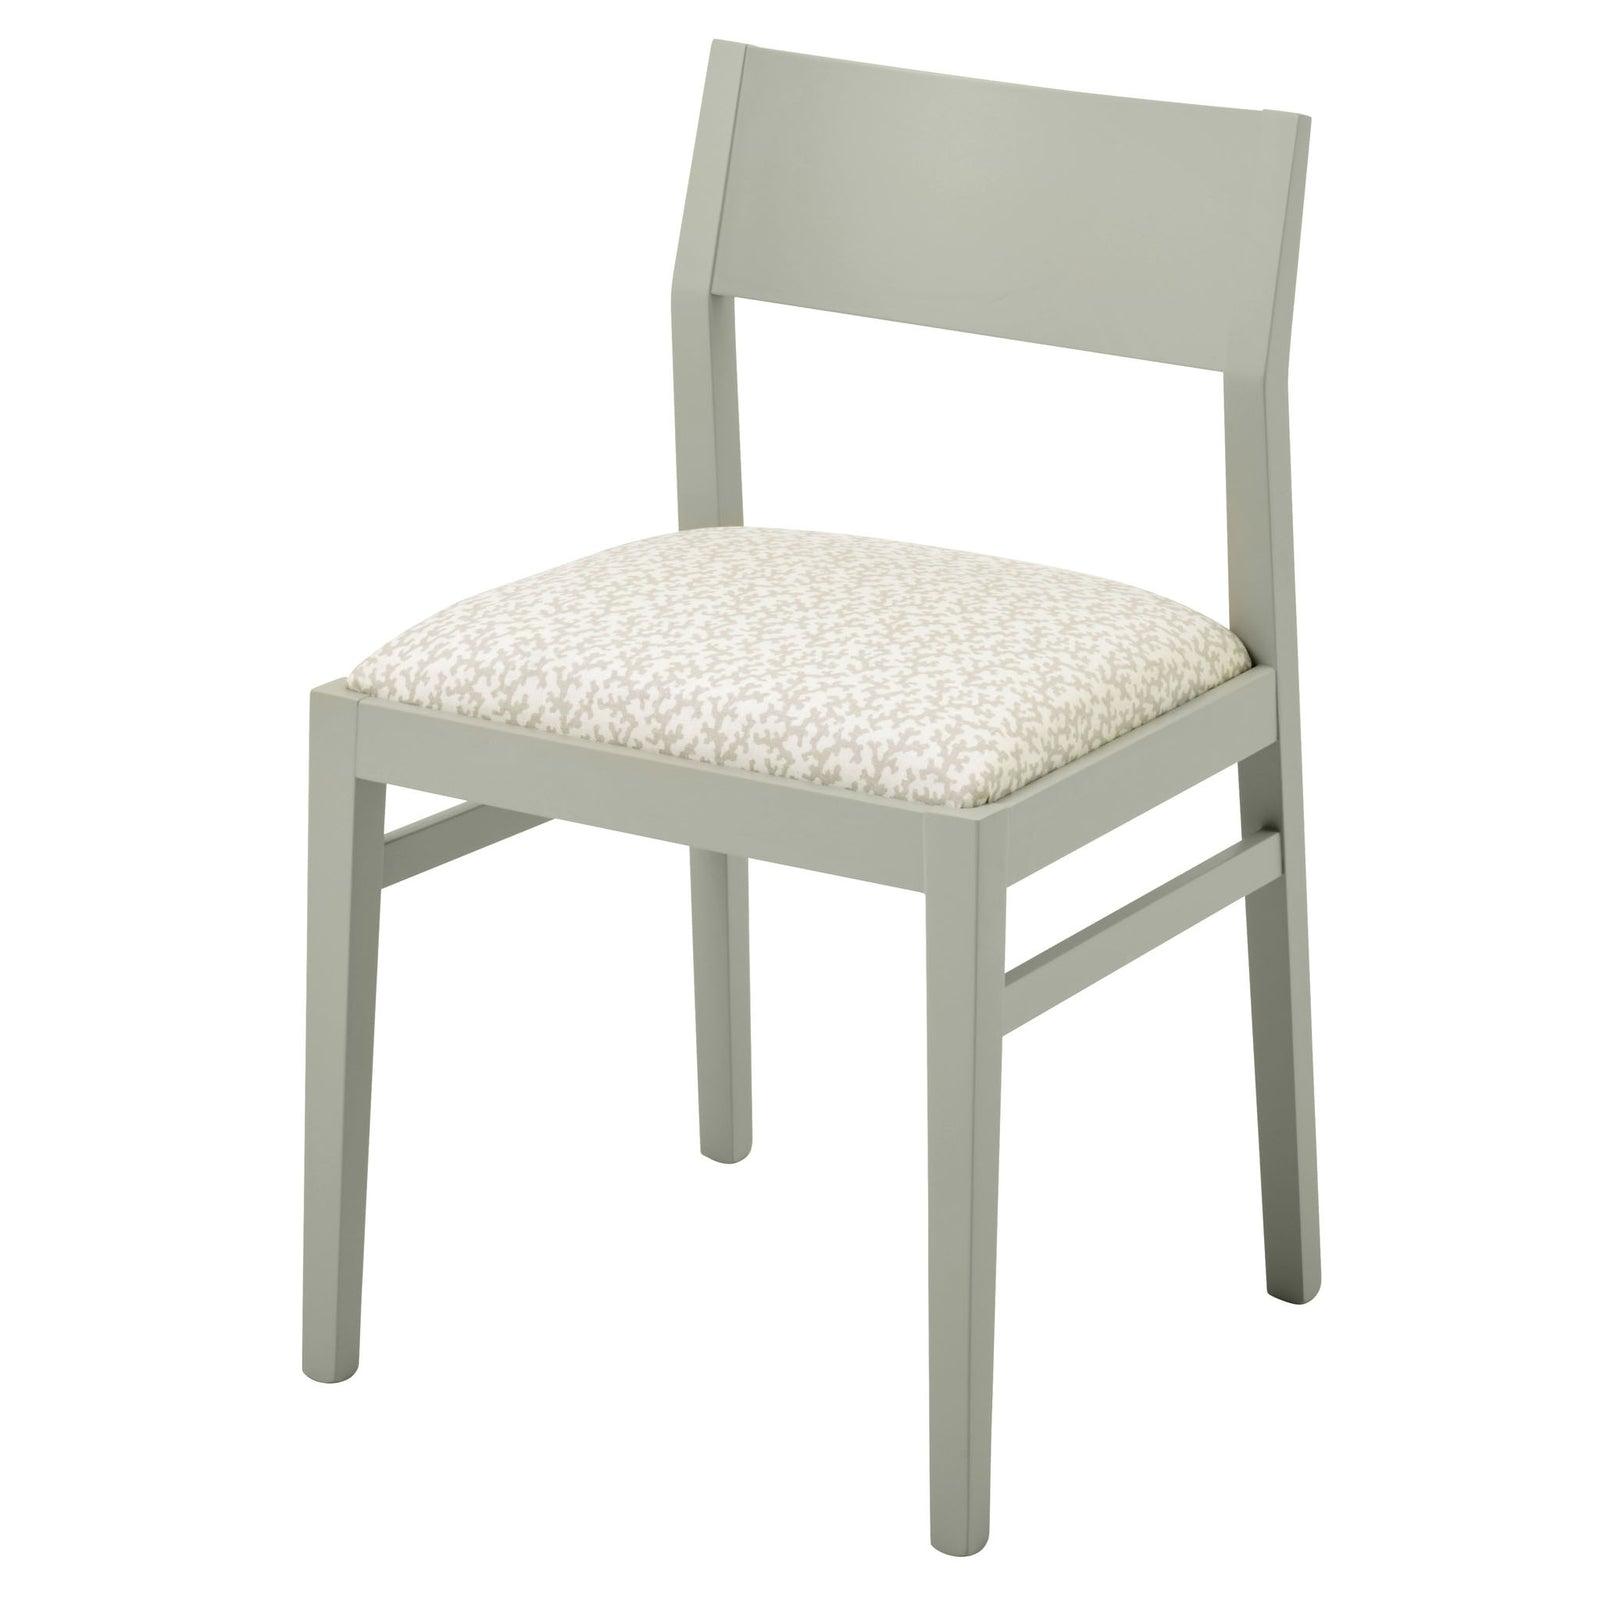 The Stylish James Chair in the elegant Folly from Veere Grenney